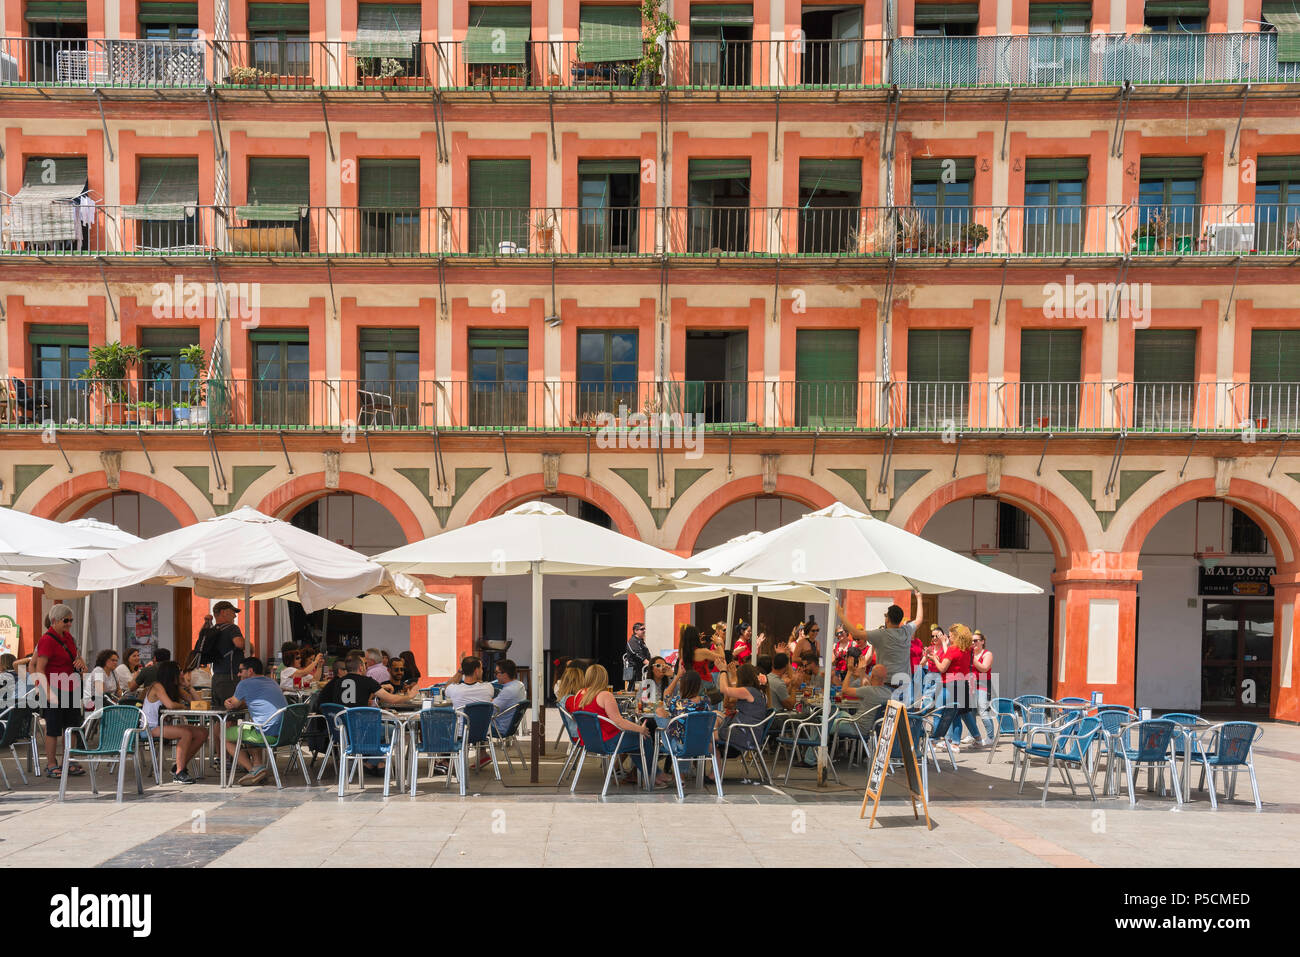 Cordoba Spain, view of a cafe terrace in the 17th Century Plaza de la Corredera in the center of Cordoba on a summer afternoon, Andalucia, Spain. Stock Photo